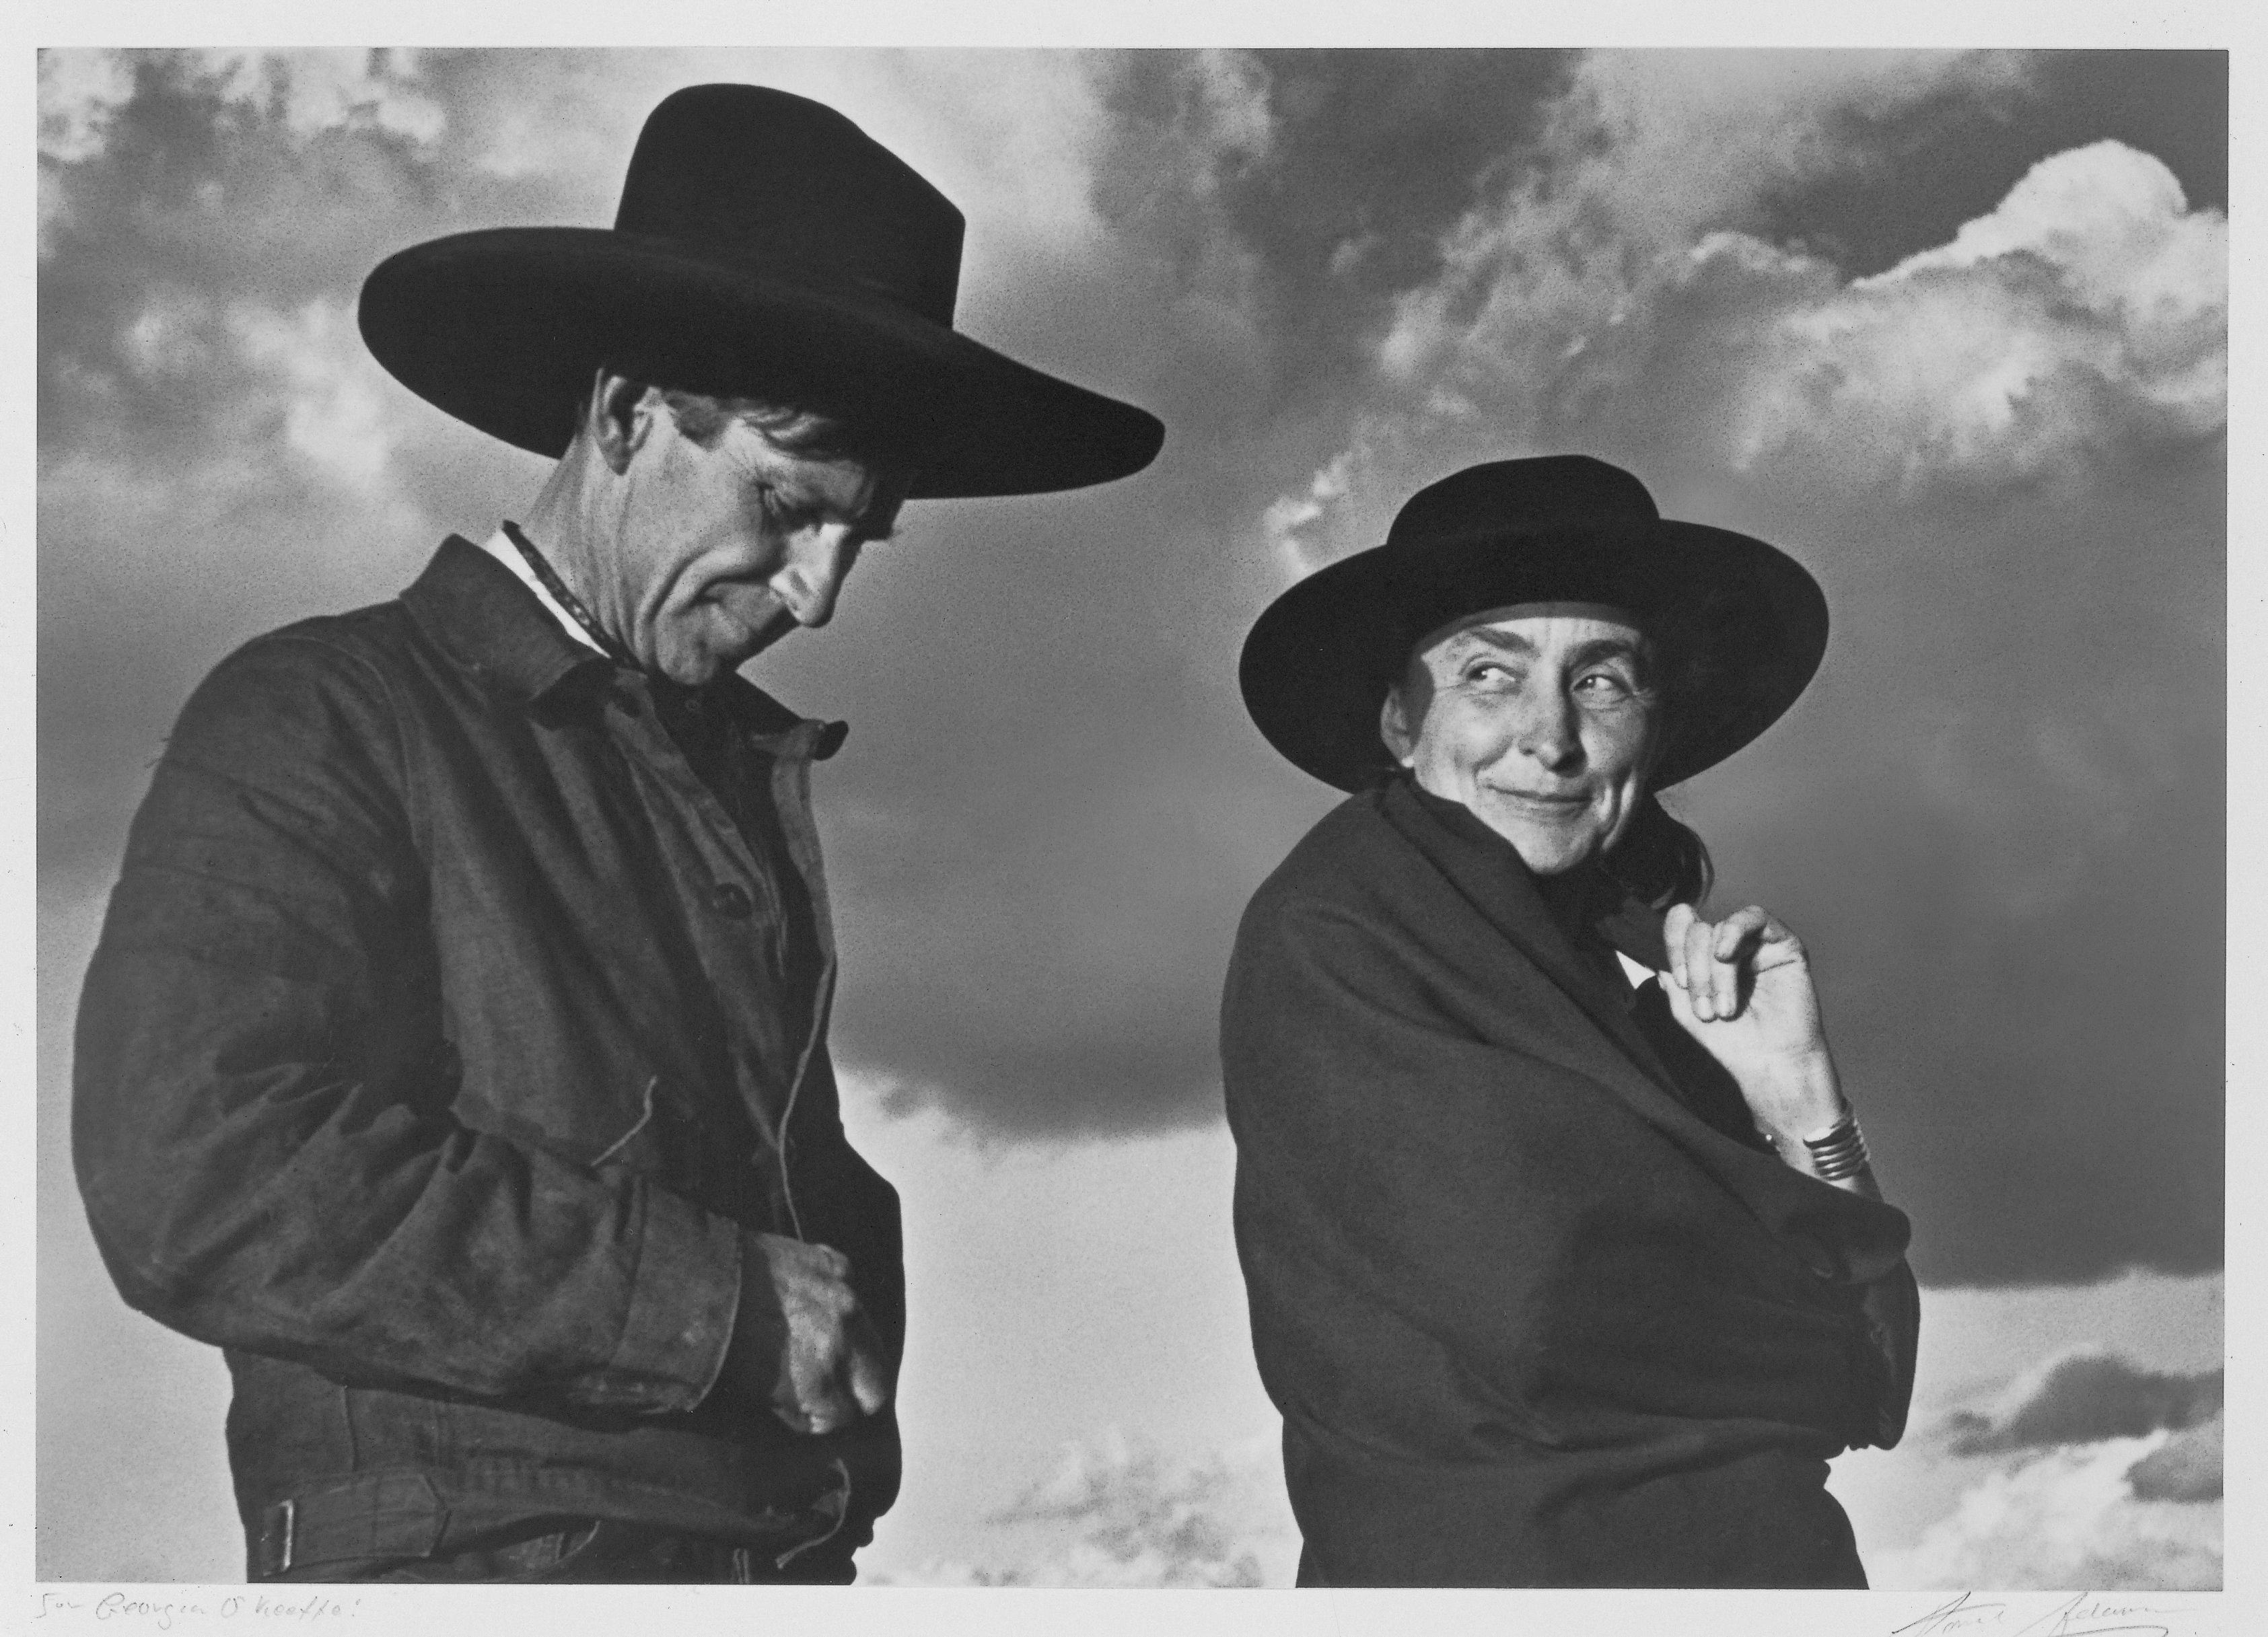 Ansel Adams (American, 1902–1984). Georgia O'Keeffe and Orville Cox, 1937. Georgia O'Keeffe Museum, Santa Fe, N.M.; Gift of The Georgia O'Keeffe Foundation, 2006.06.1480. © 2016 The Ansel Adams Publishing Rights Trust